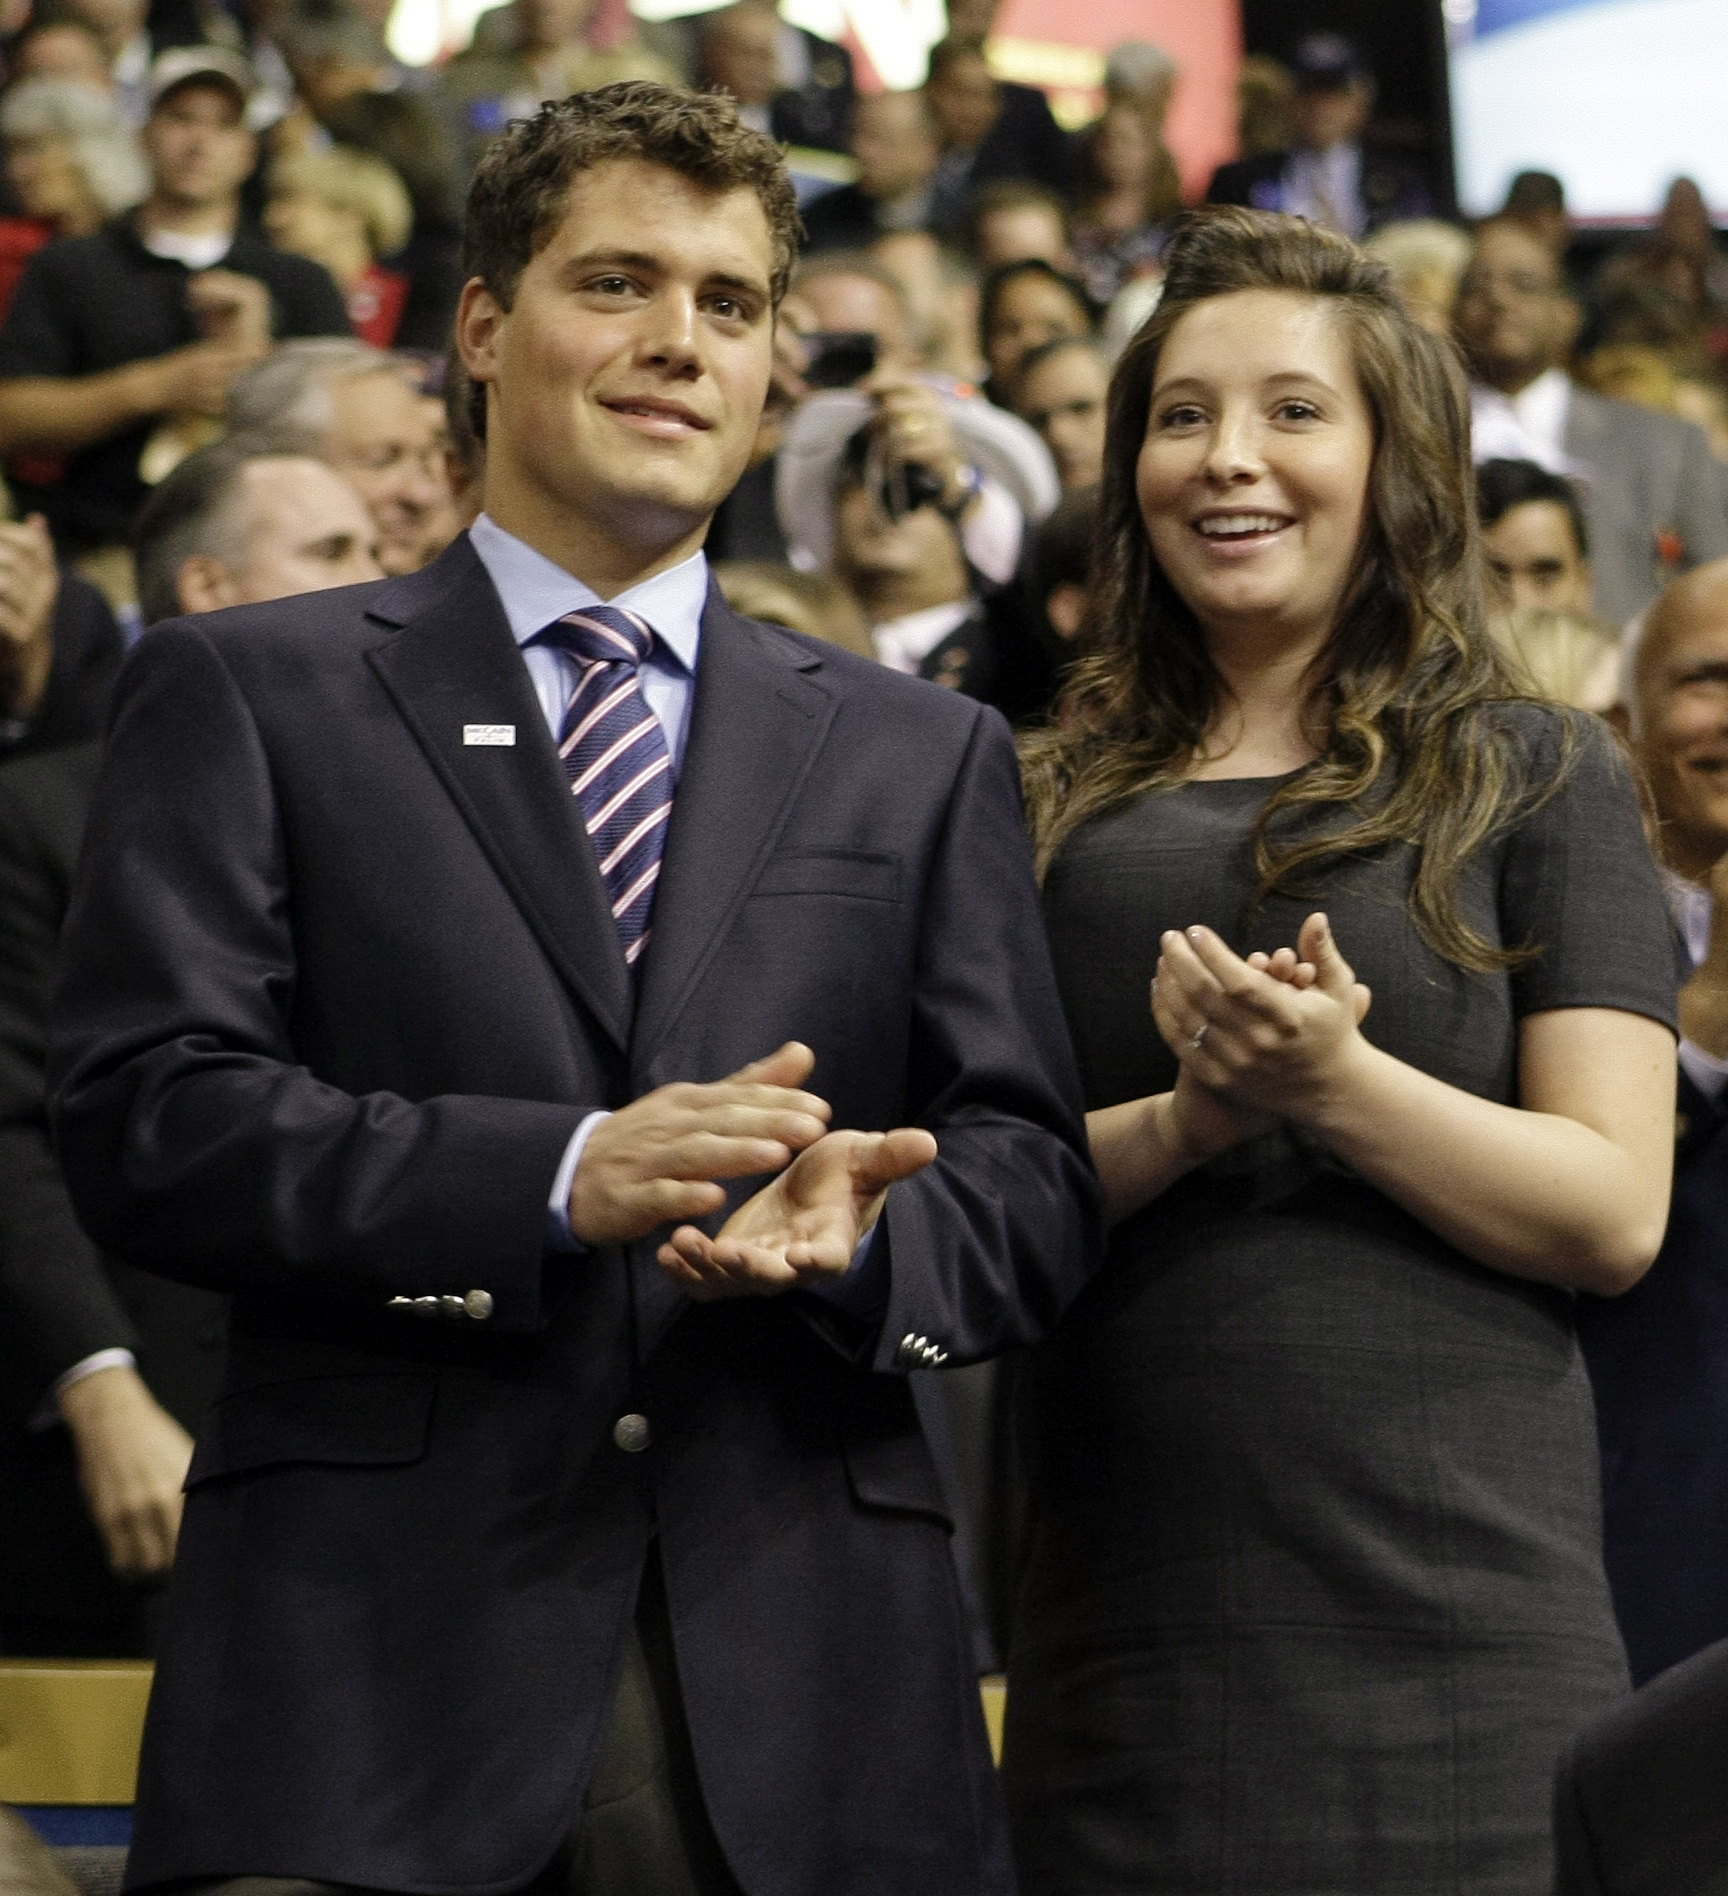 Bristol Palin and Levi Johnston are pictured in St. Paul, Minnisota in this September 2008 file photo.